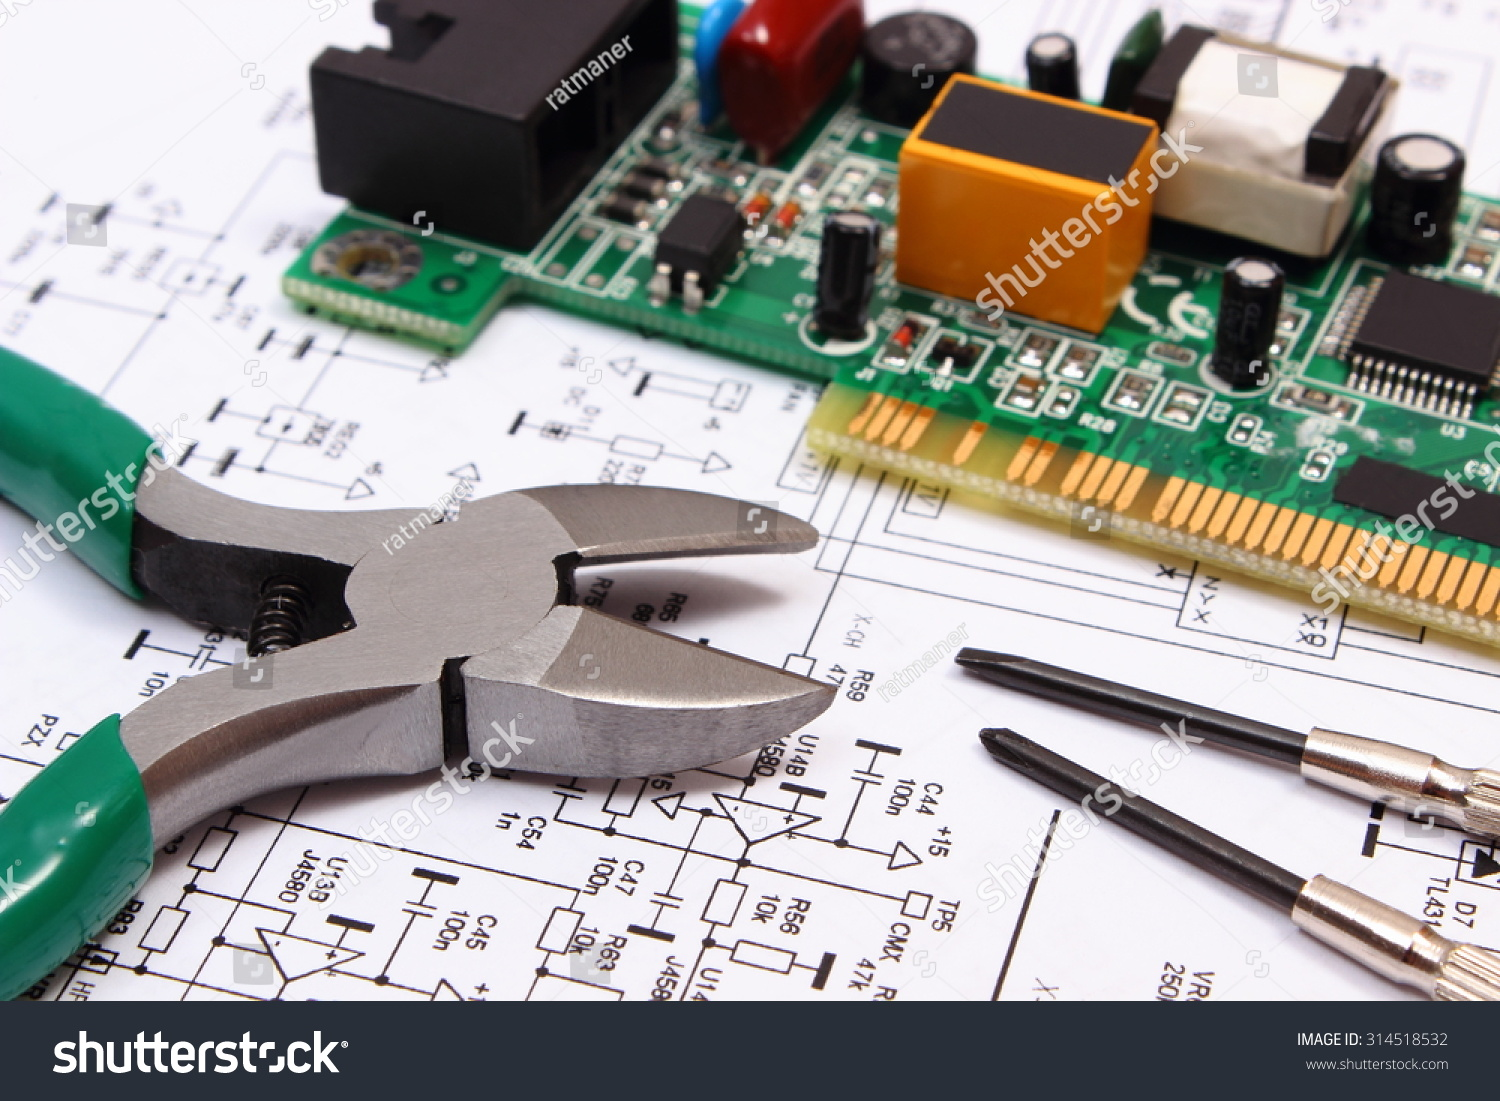 Construction Technology Tools : Printed circuit board with electrical components and